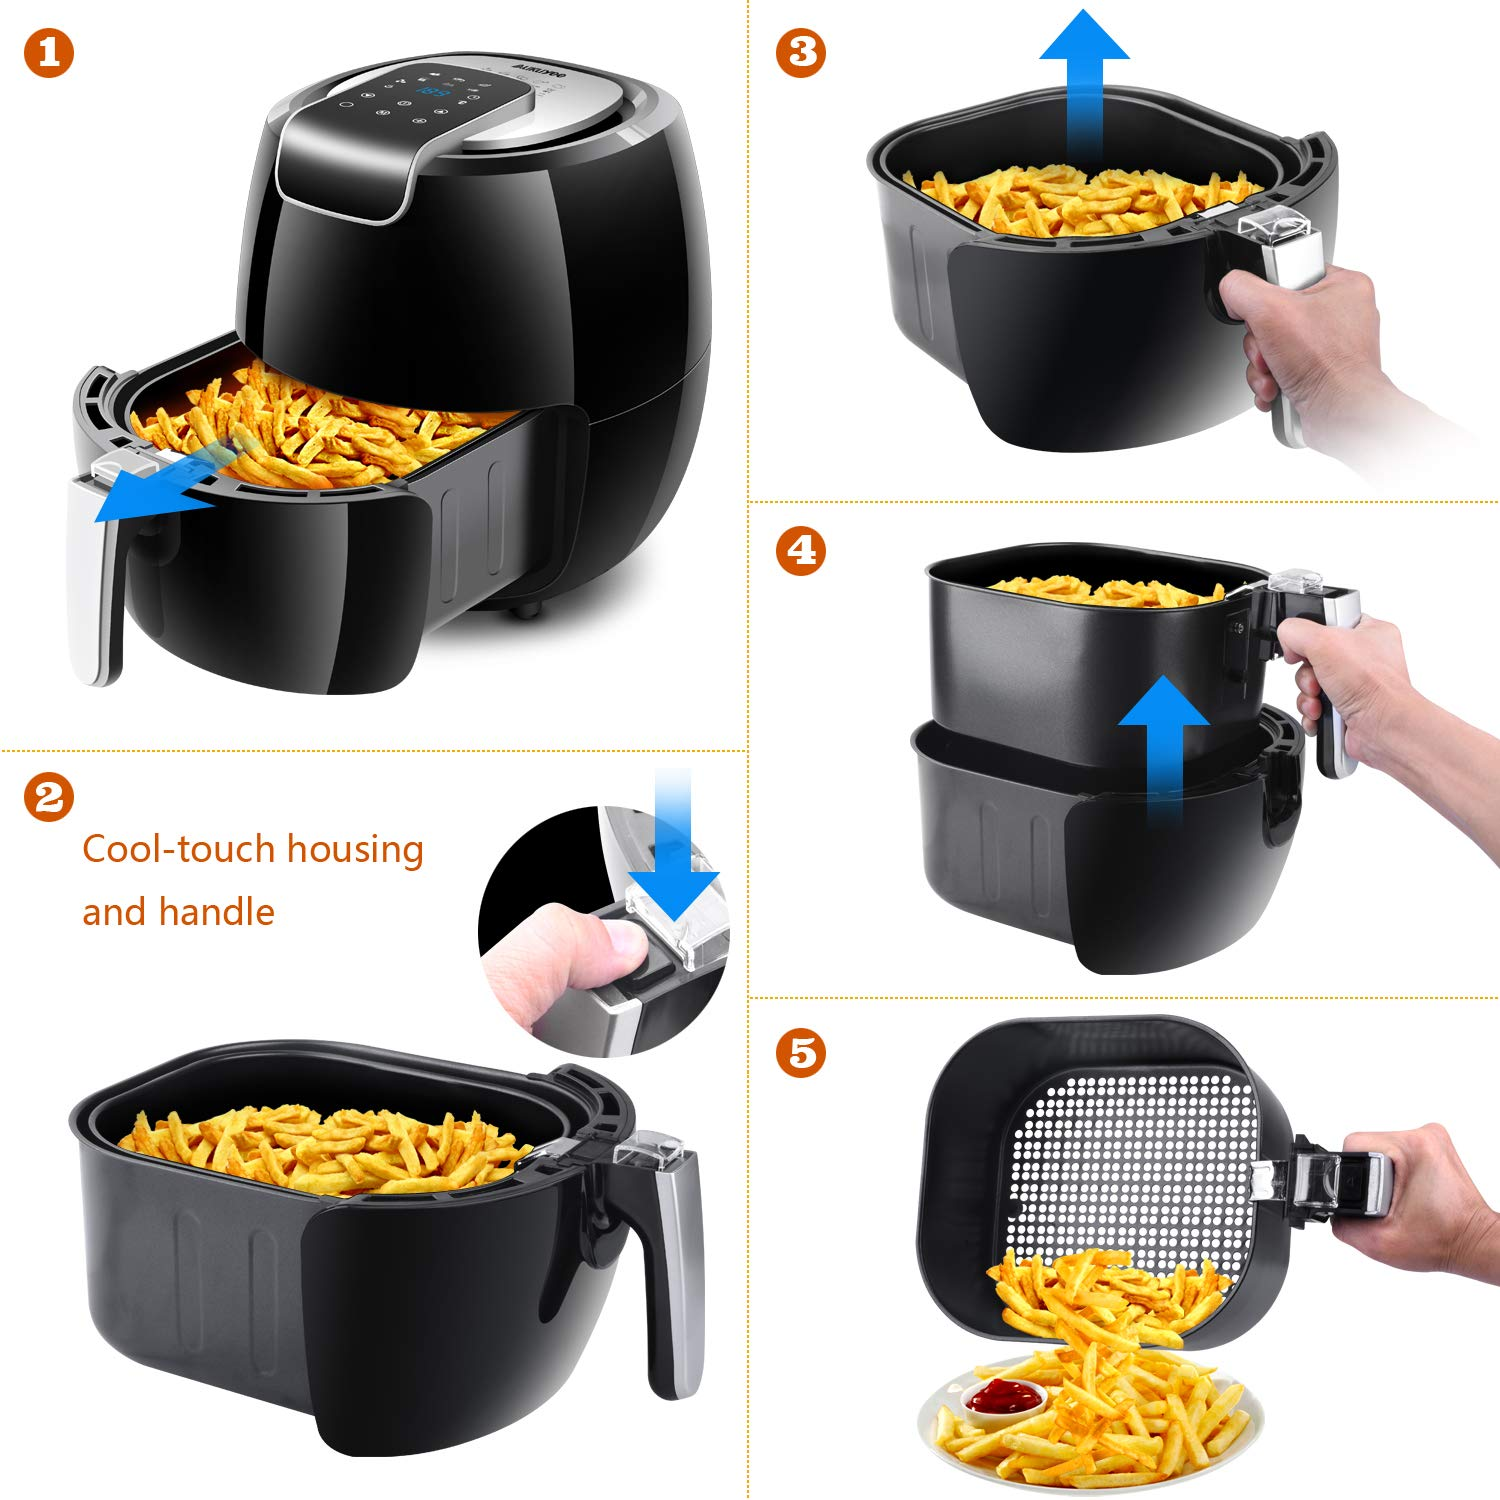 Air fryer XL 5.5QT AUKUYEE Oil-less Electric Hot Air Fryer 5.6Qt 1800w in Family Size with Air Fry Recipe Book HQ11